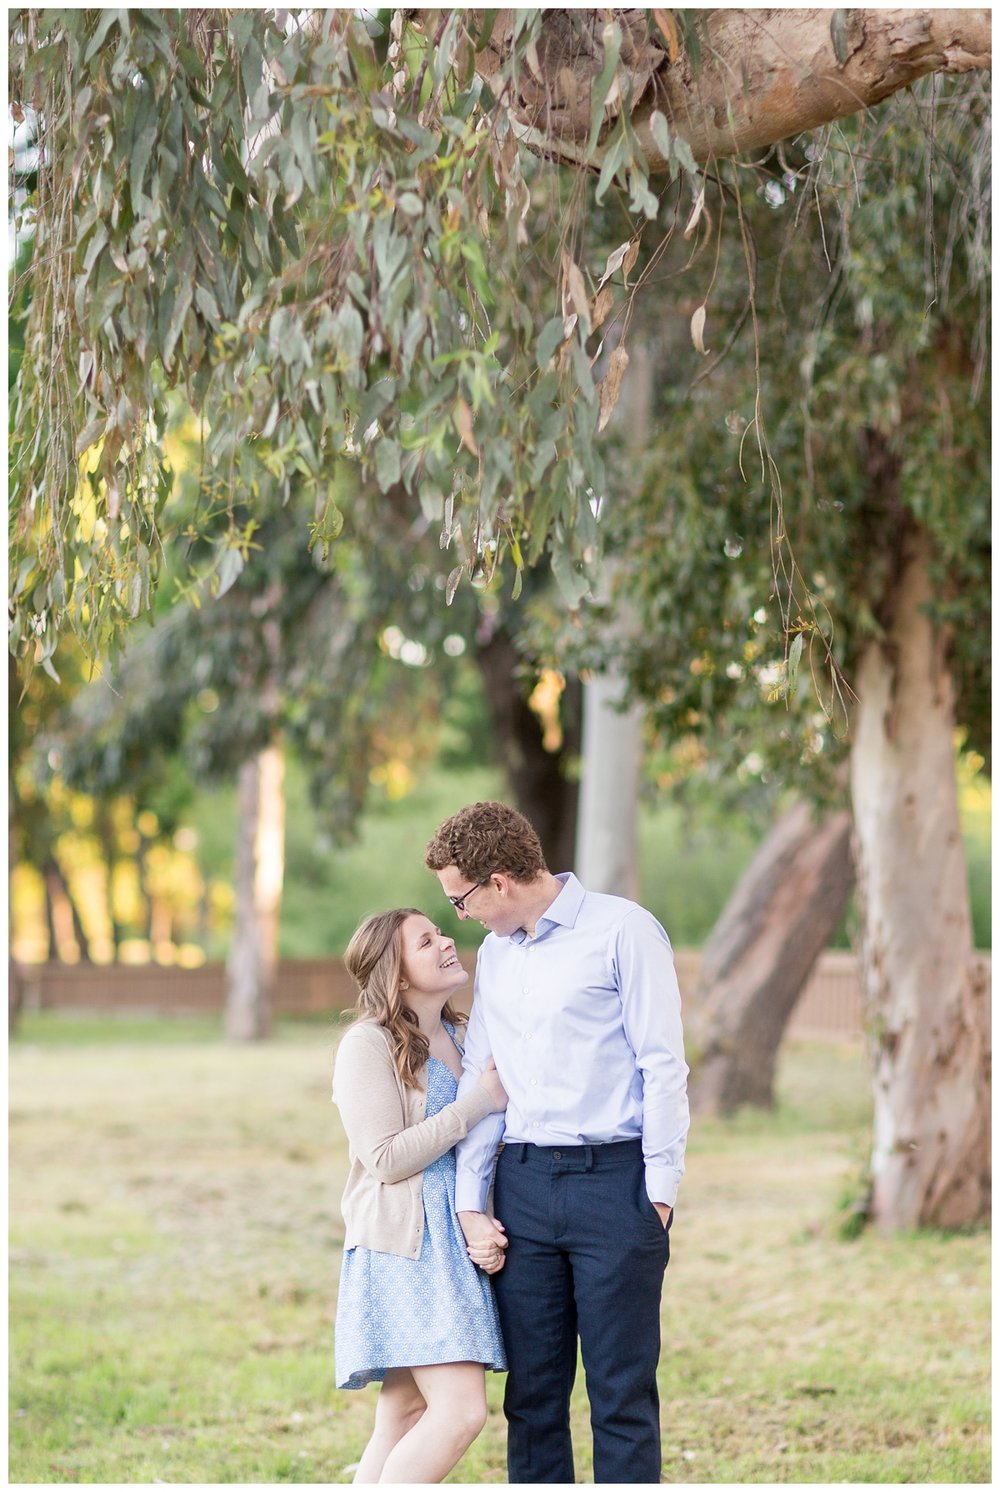 Clearlake-California-Engagement-Photographer_5171.jpg